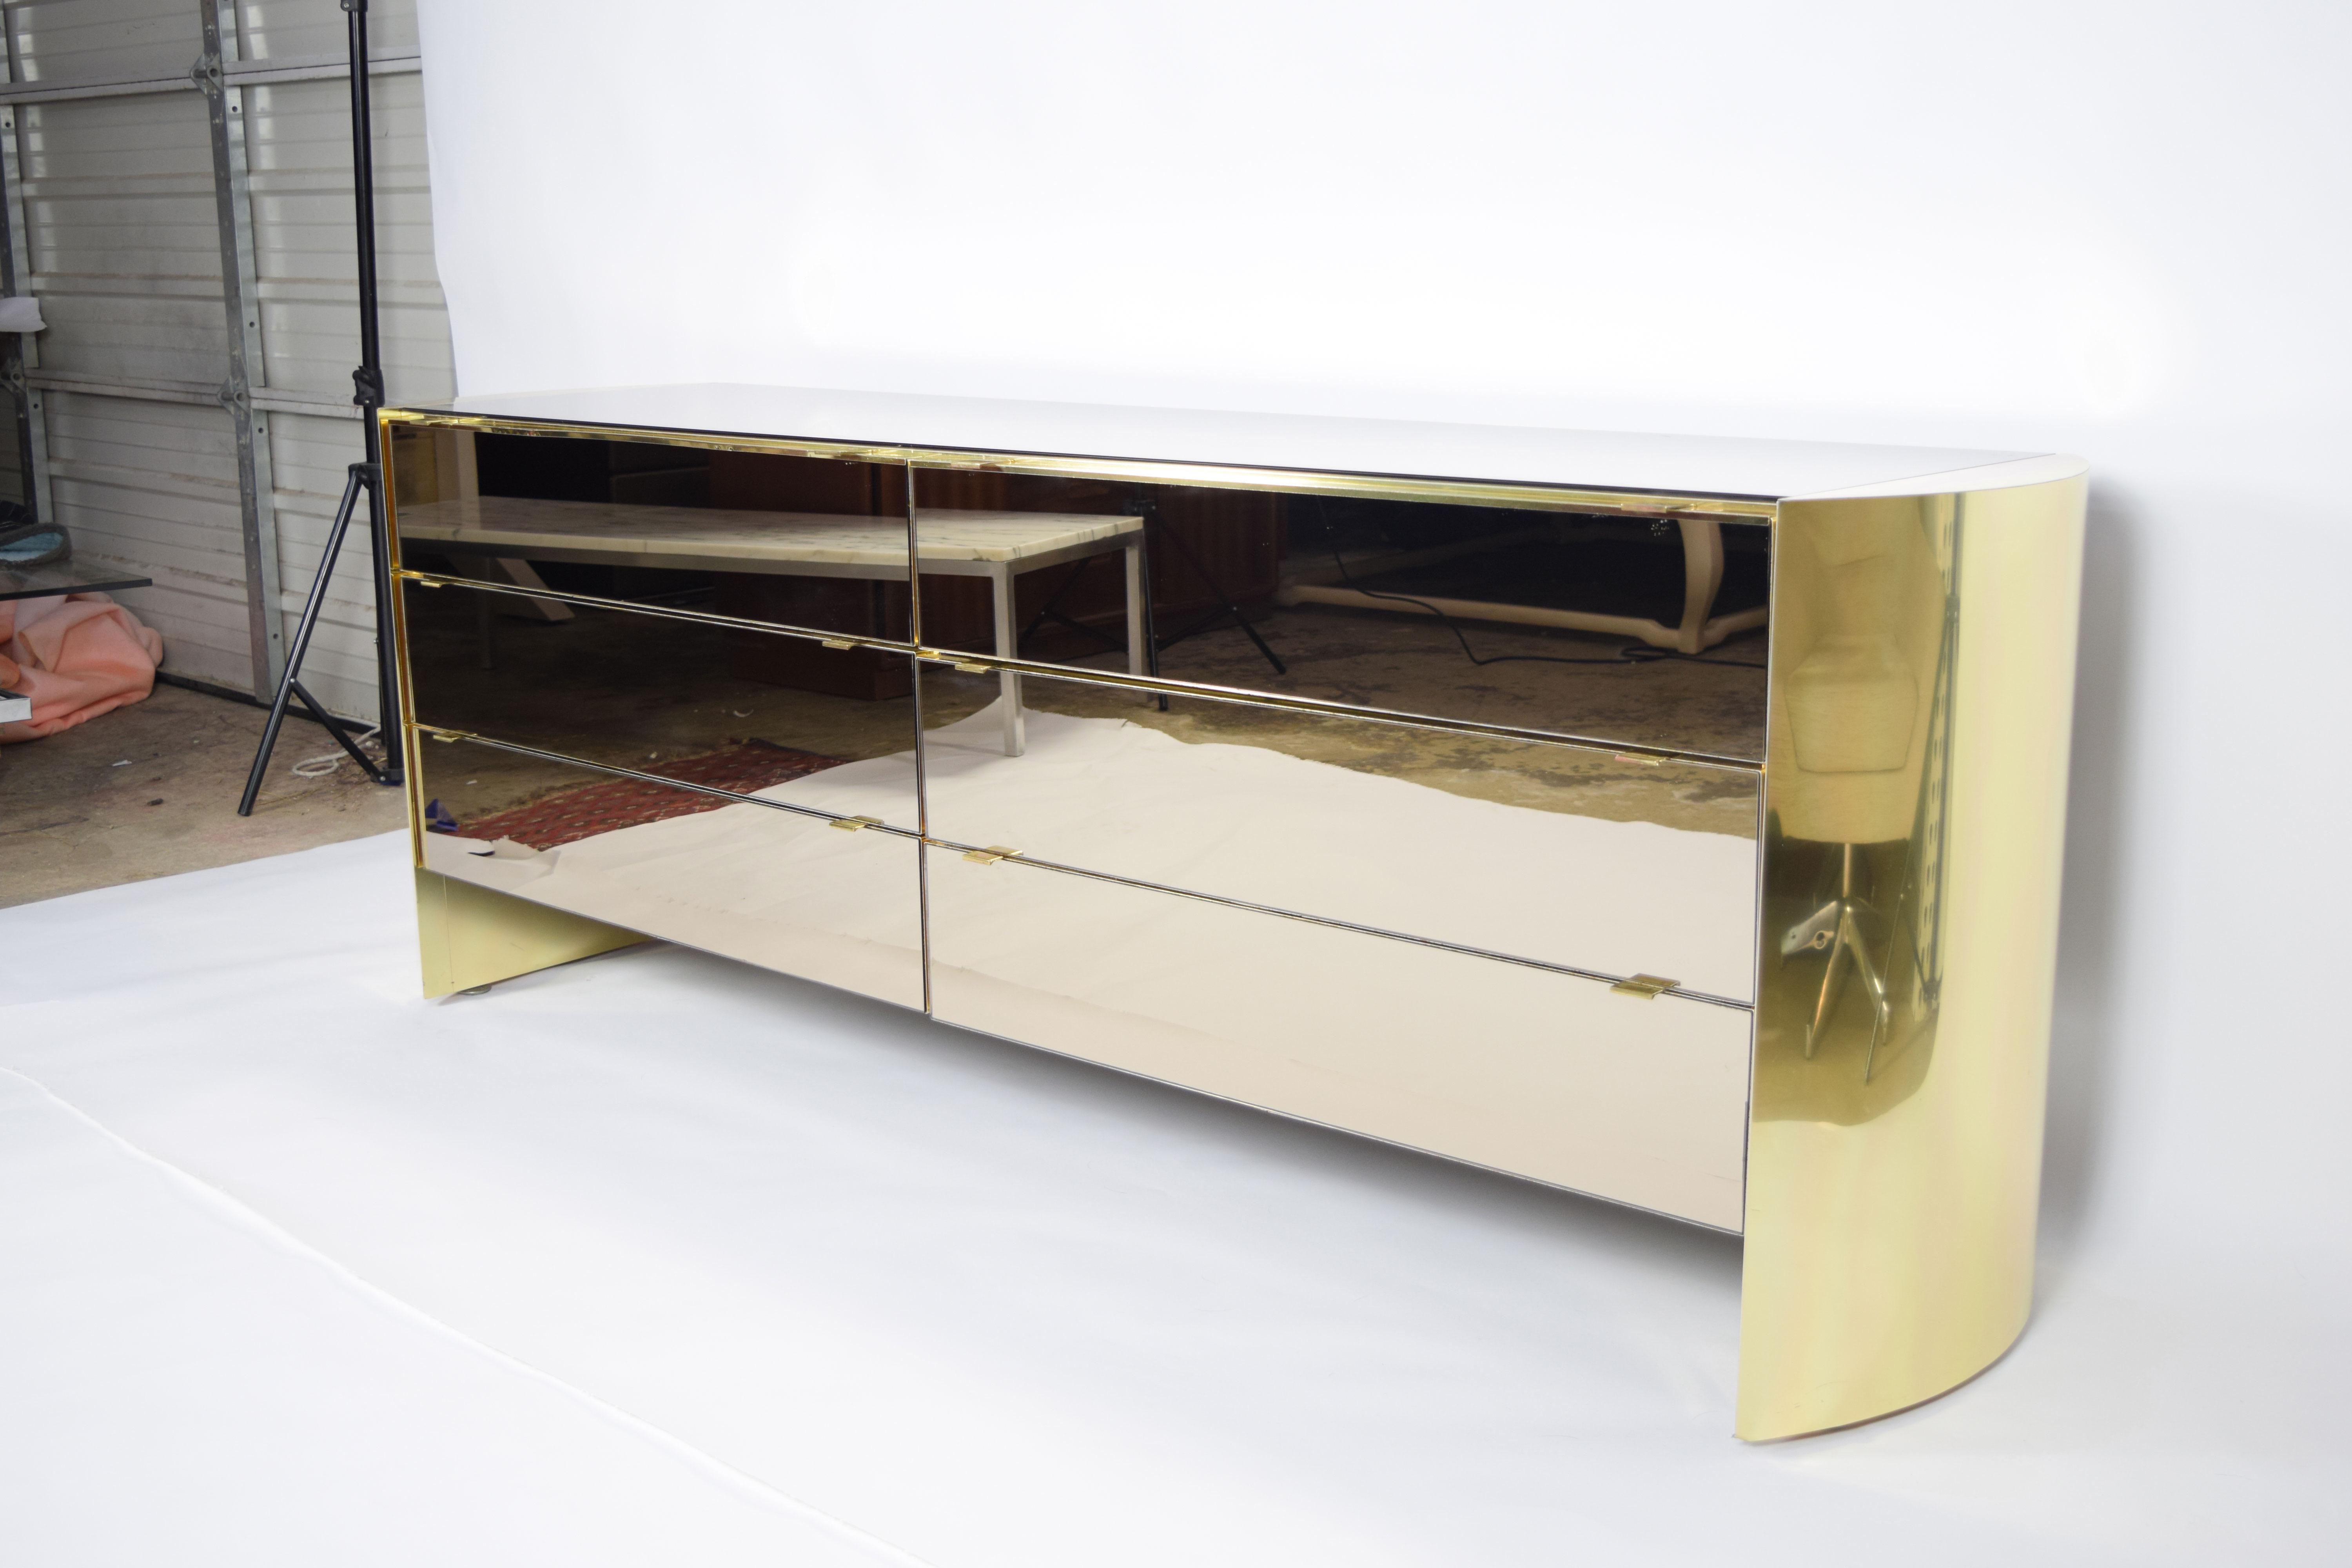 Incroyable Ello Furniture Smoked Mirror And Brass Finish Cabinet By Ello For Sale    Image 4 Of